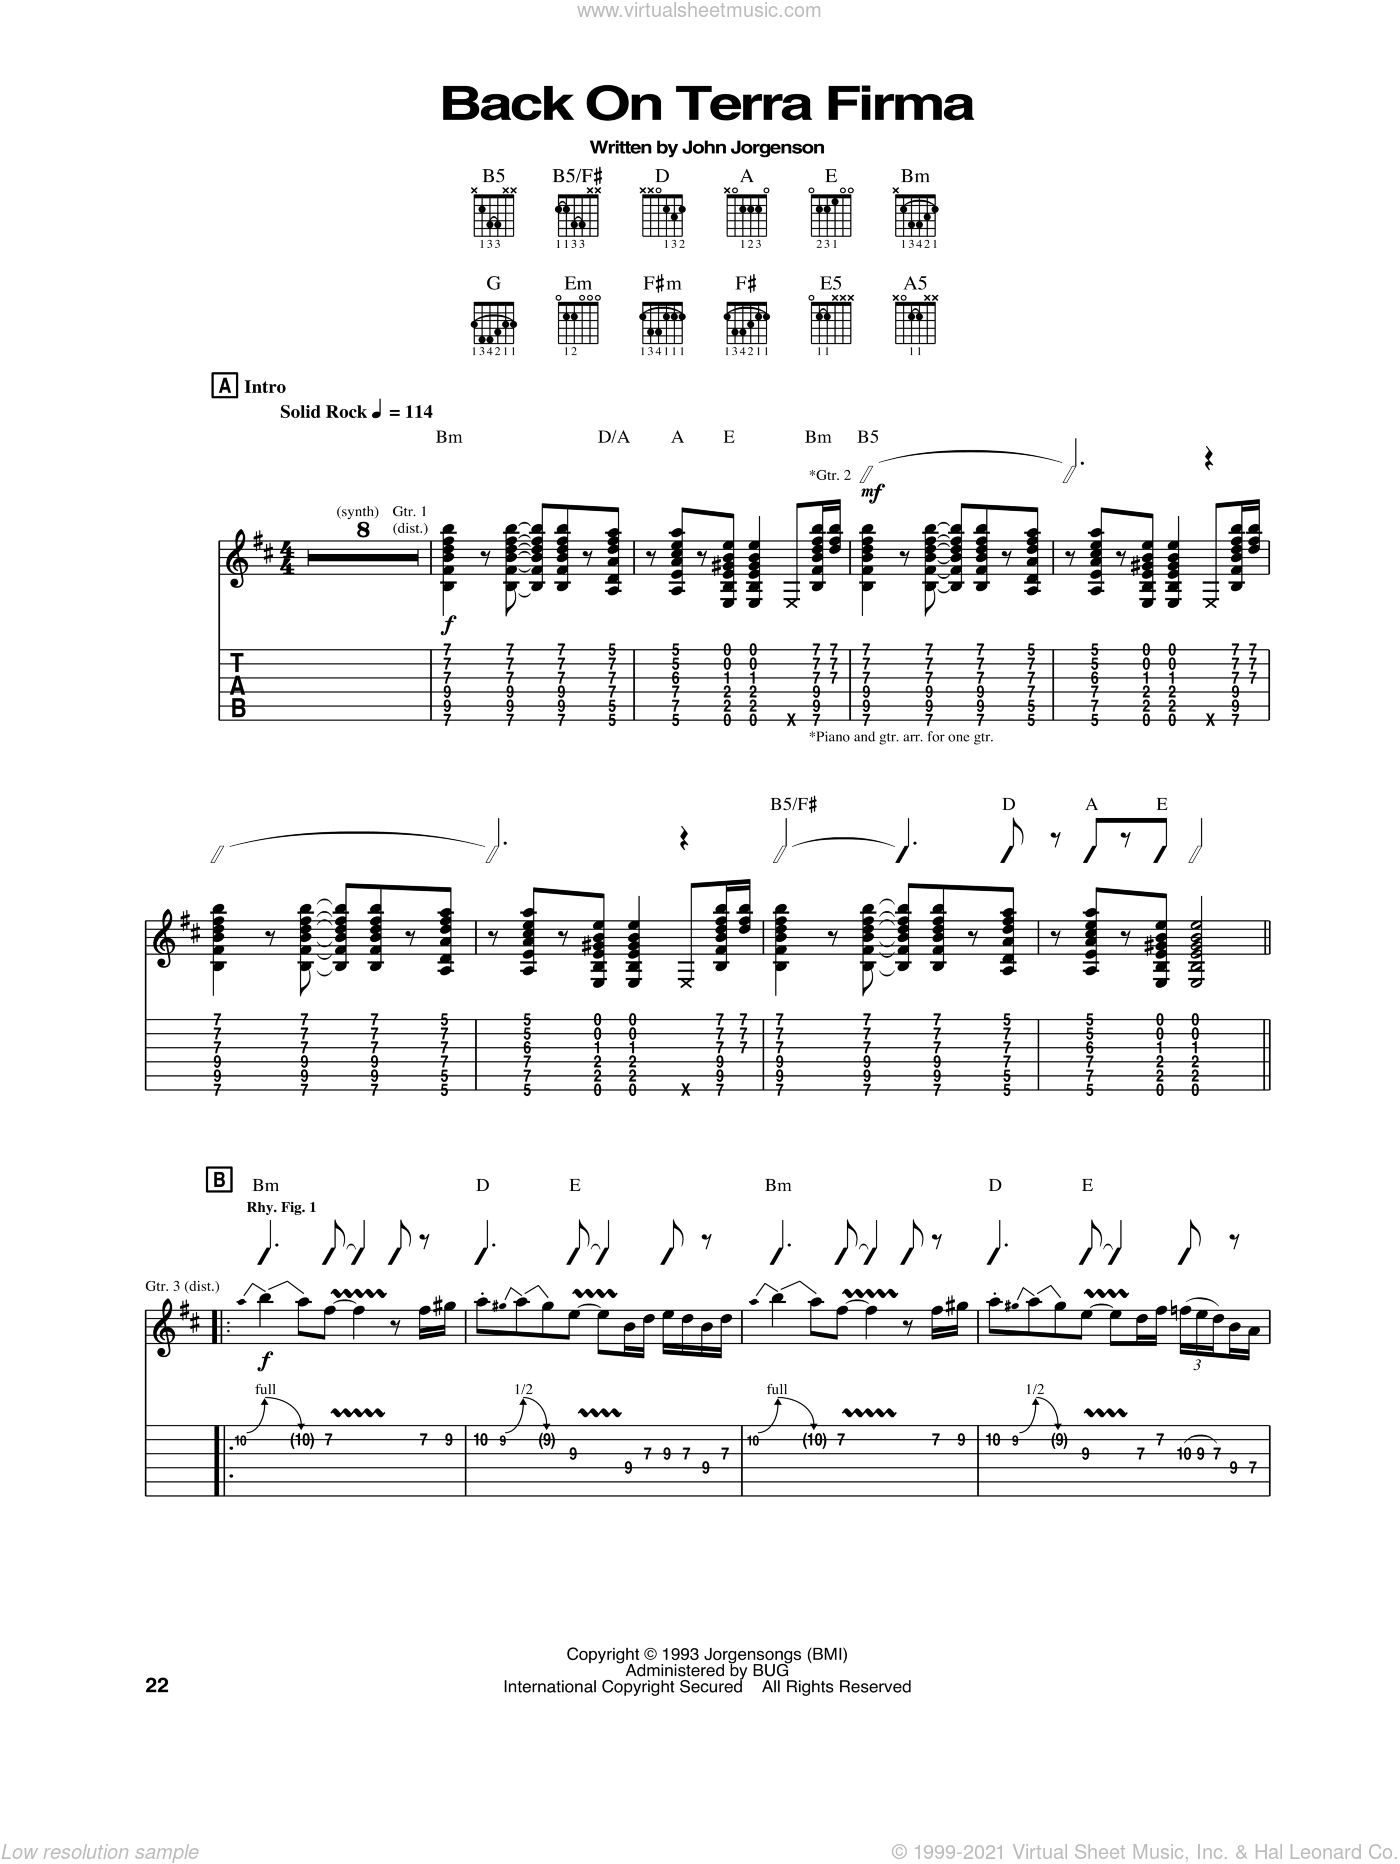 Back On Terra Firma sheet music for guitar (tablature) by John Jorgenson